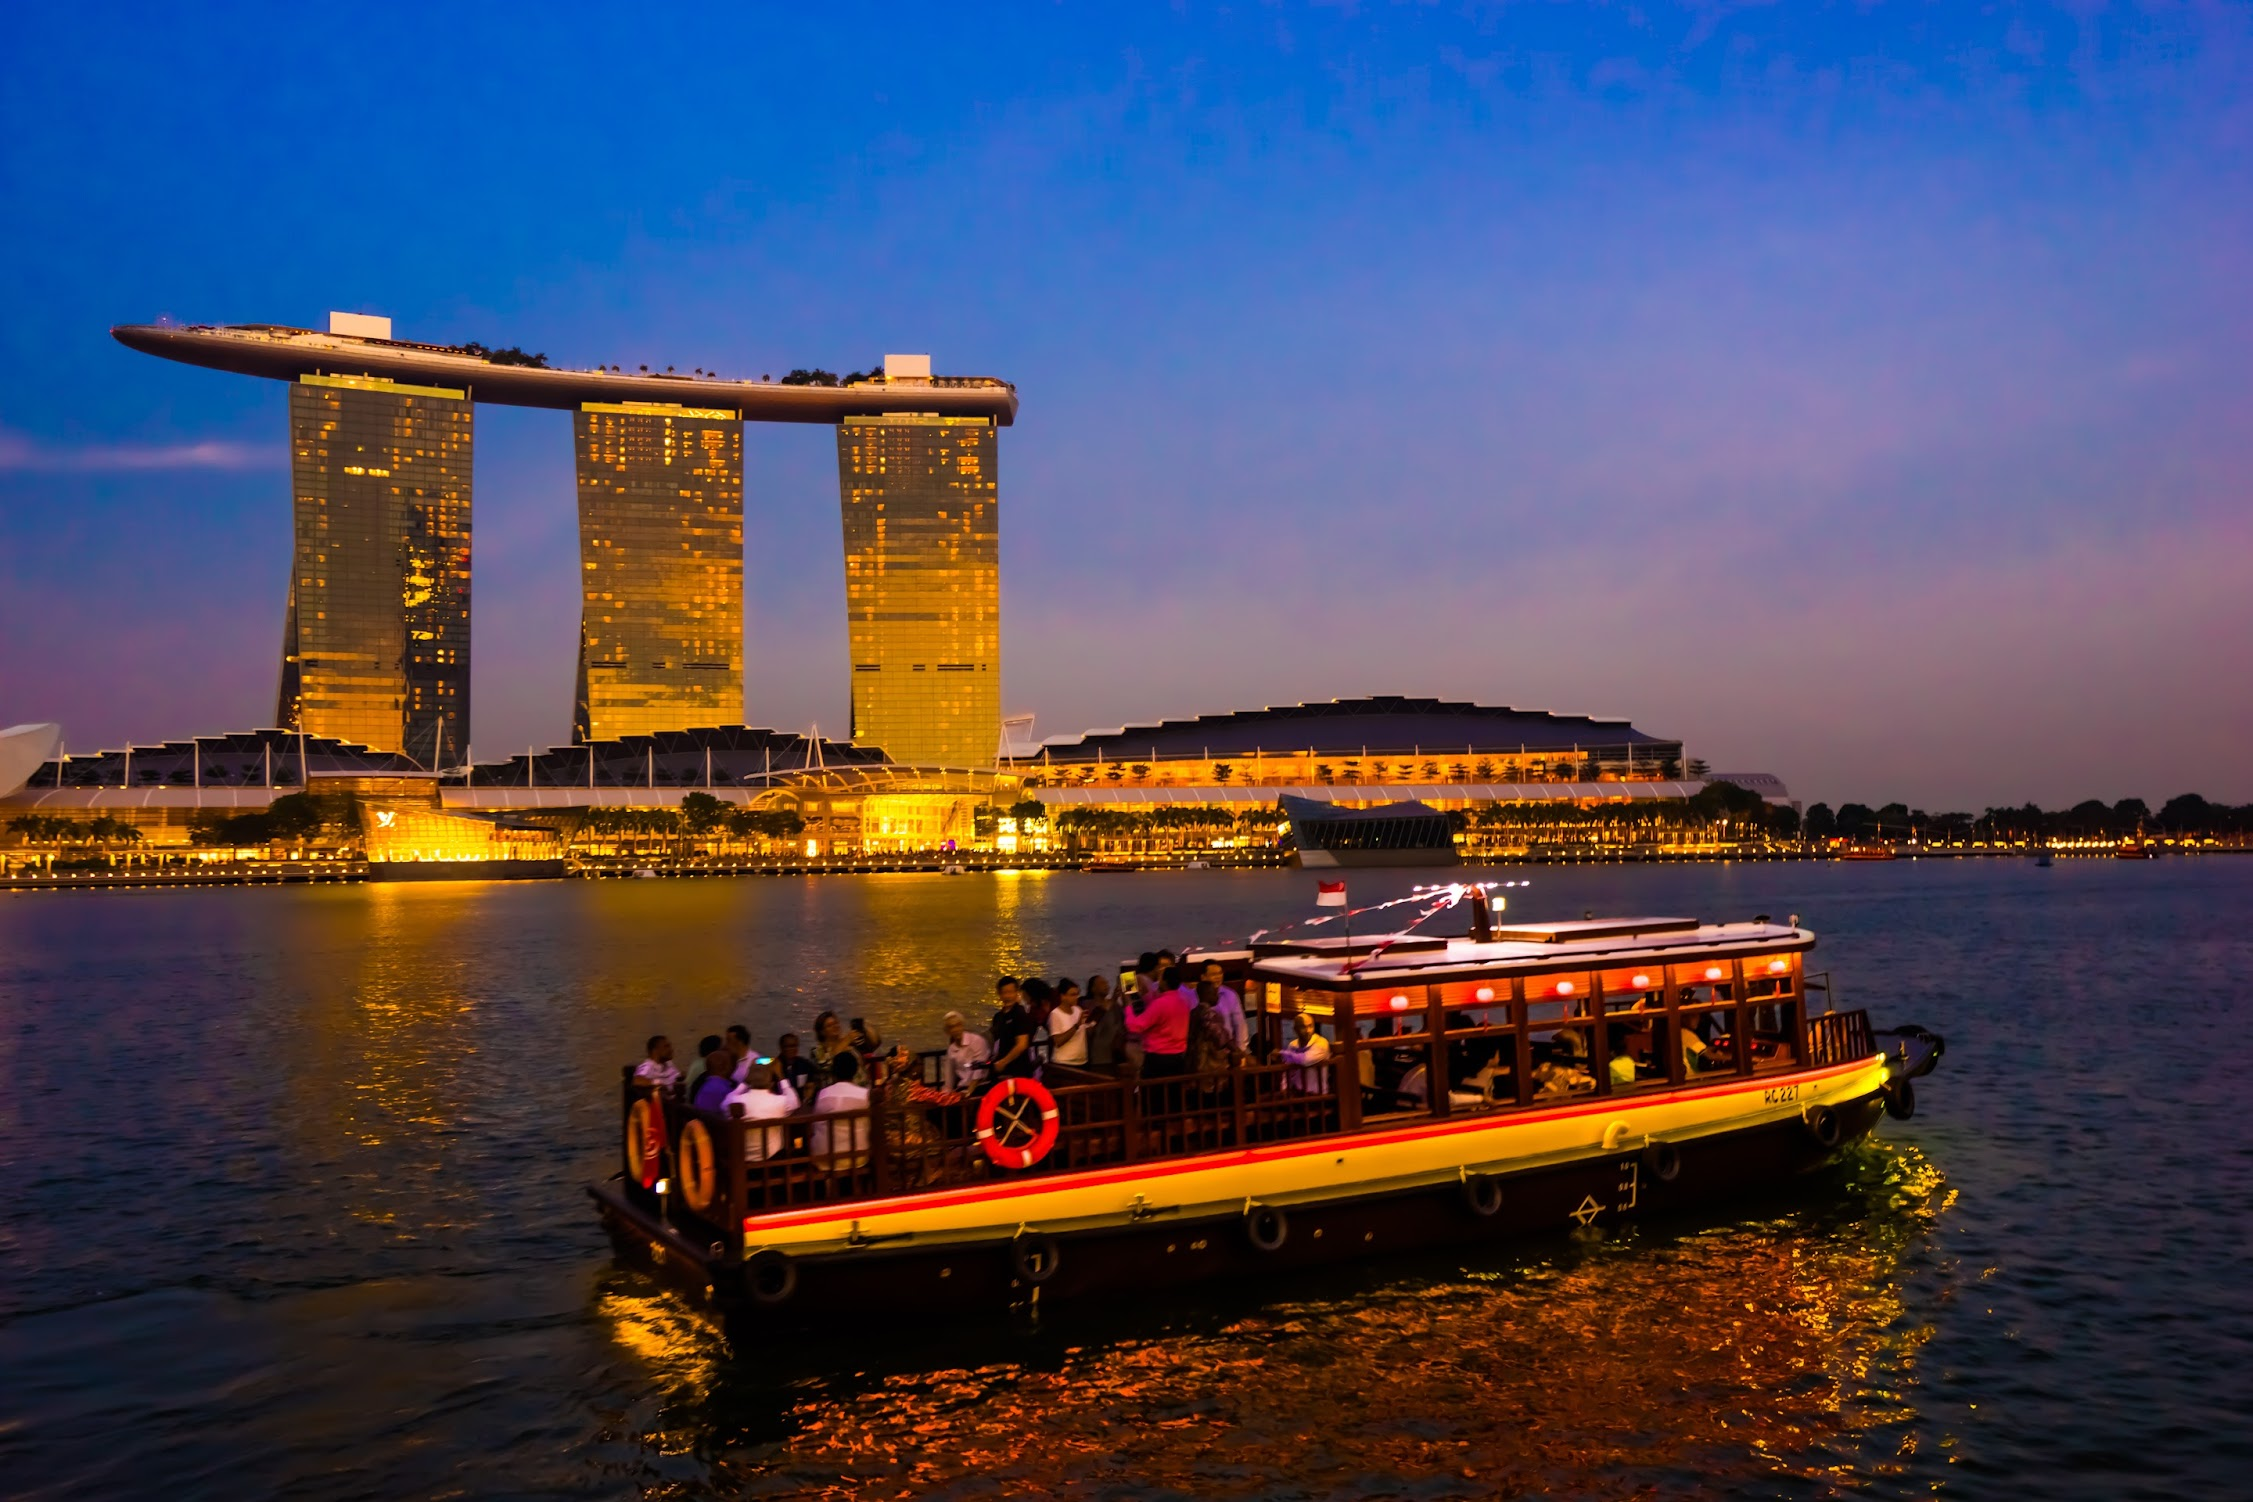 Singapore Marina Bay Sands sunset1